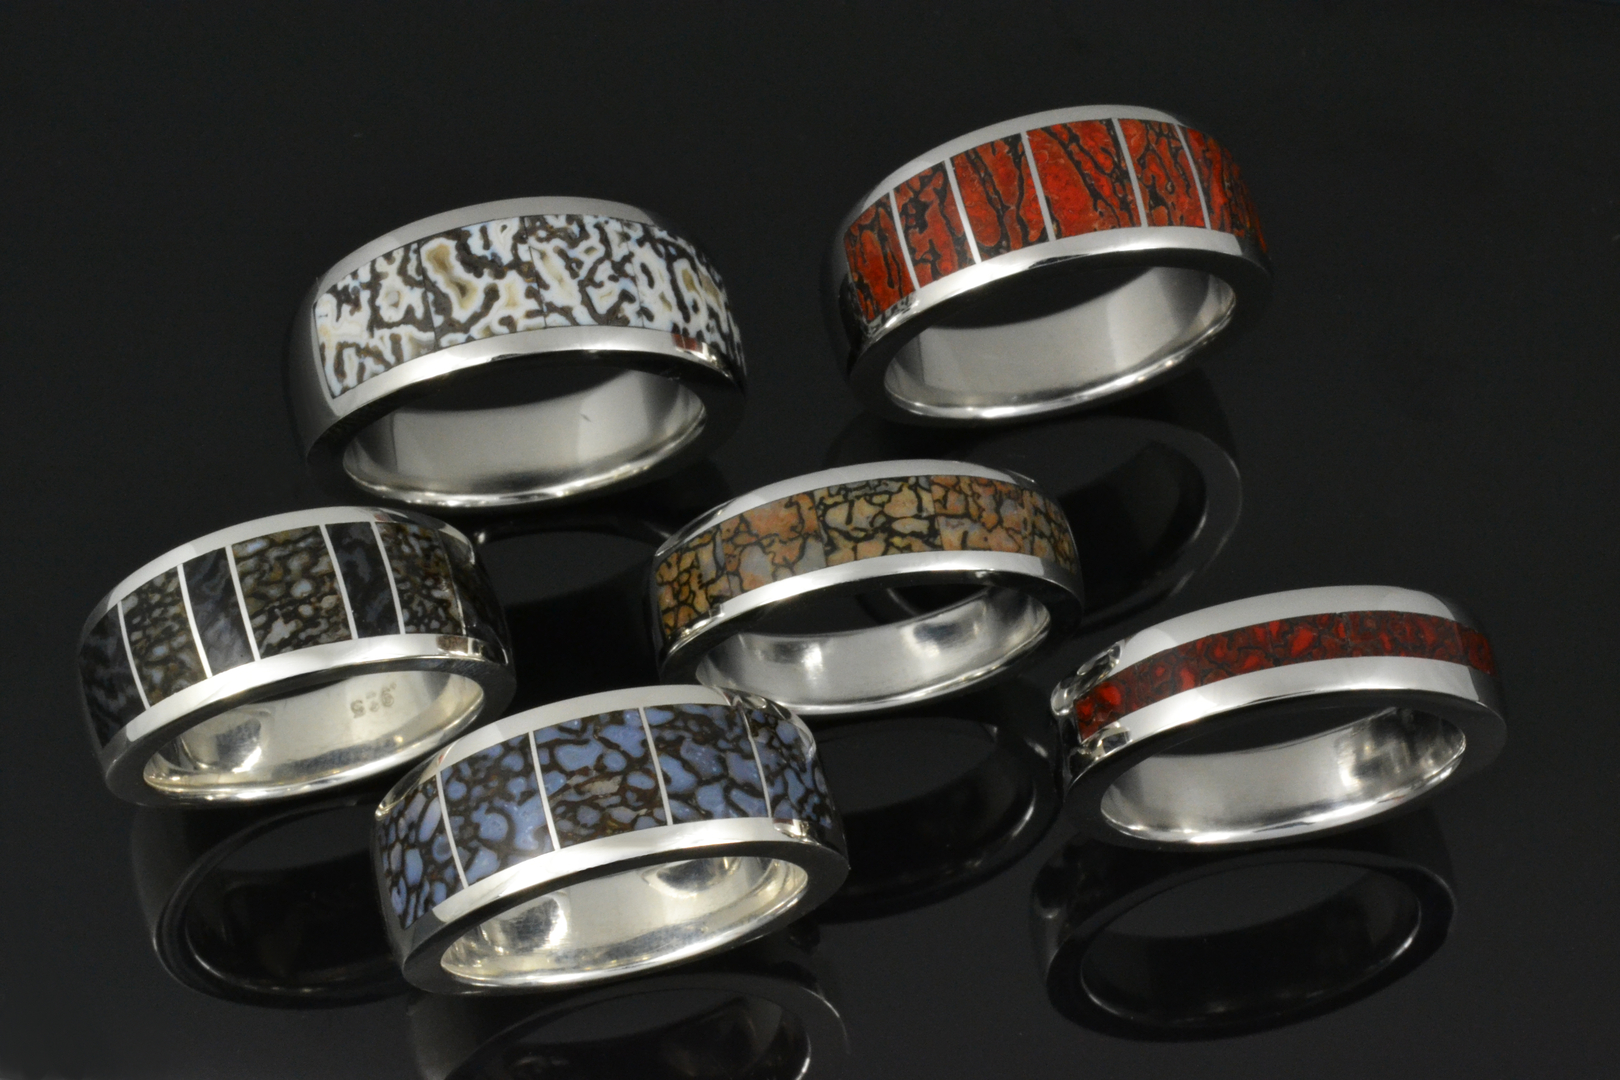 rings blue bone carbide helenus jewelers vansweden ring from dinosaur tungsten inlaid women wedding edged s beveled